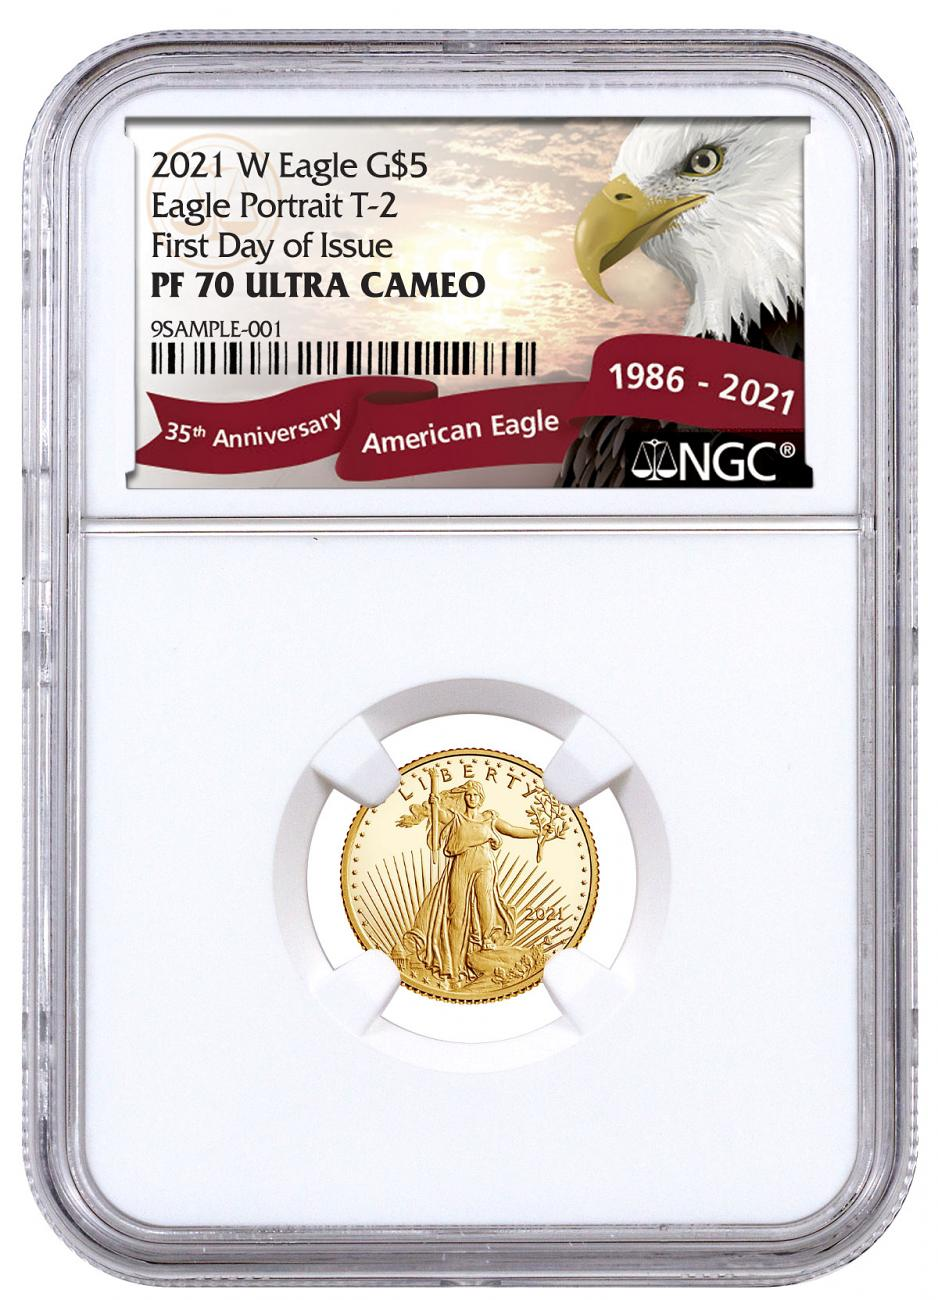 2021-W 1/10 oz Gold American Eagle Type 2 Proof $5 Scarce and Unique Coin Division NGC PF70 UC FDI Exclusive Eagle Label